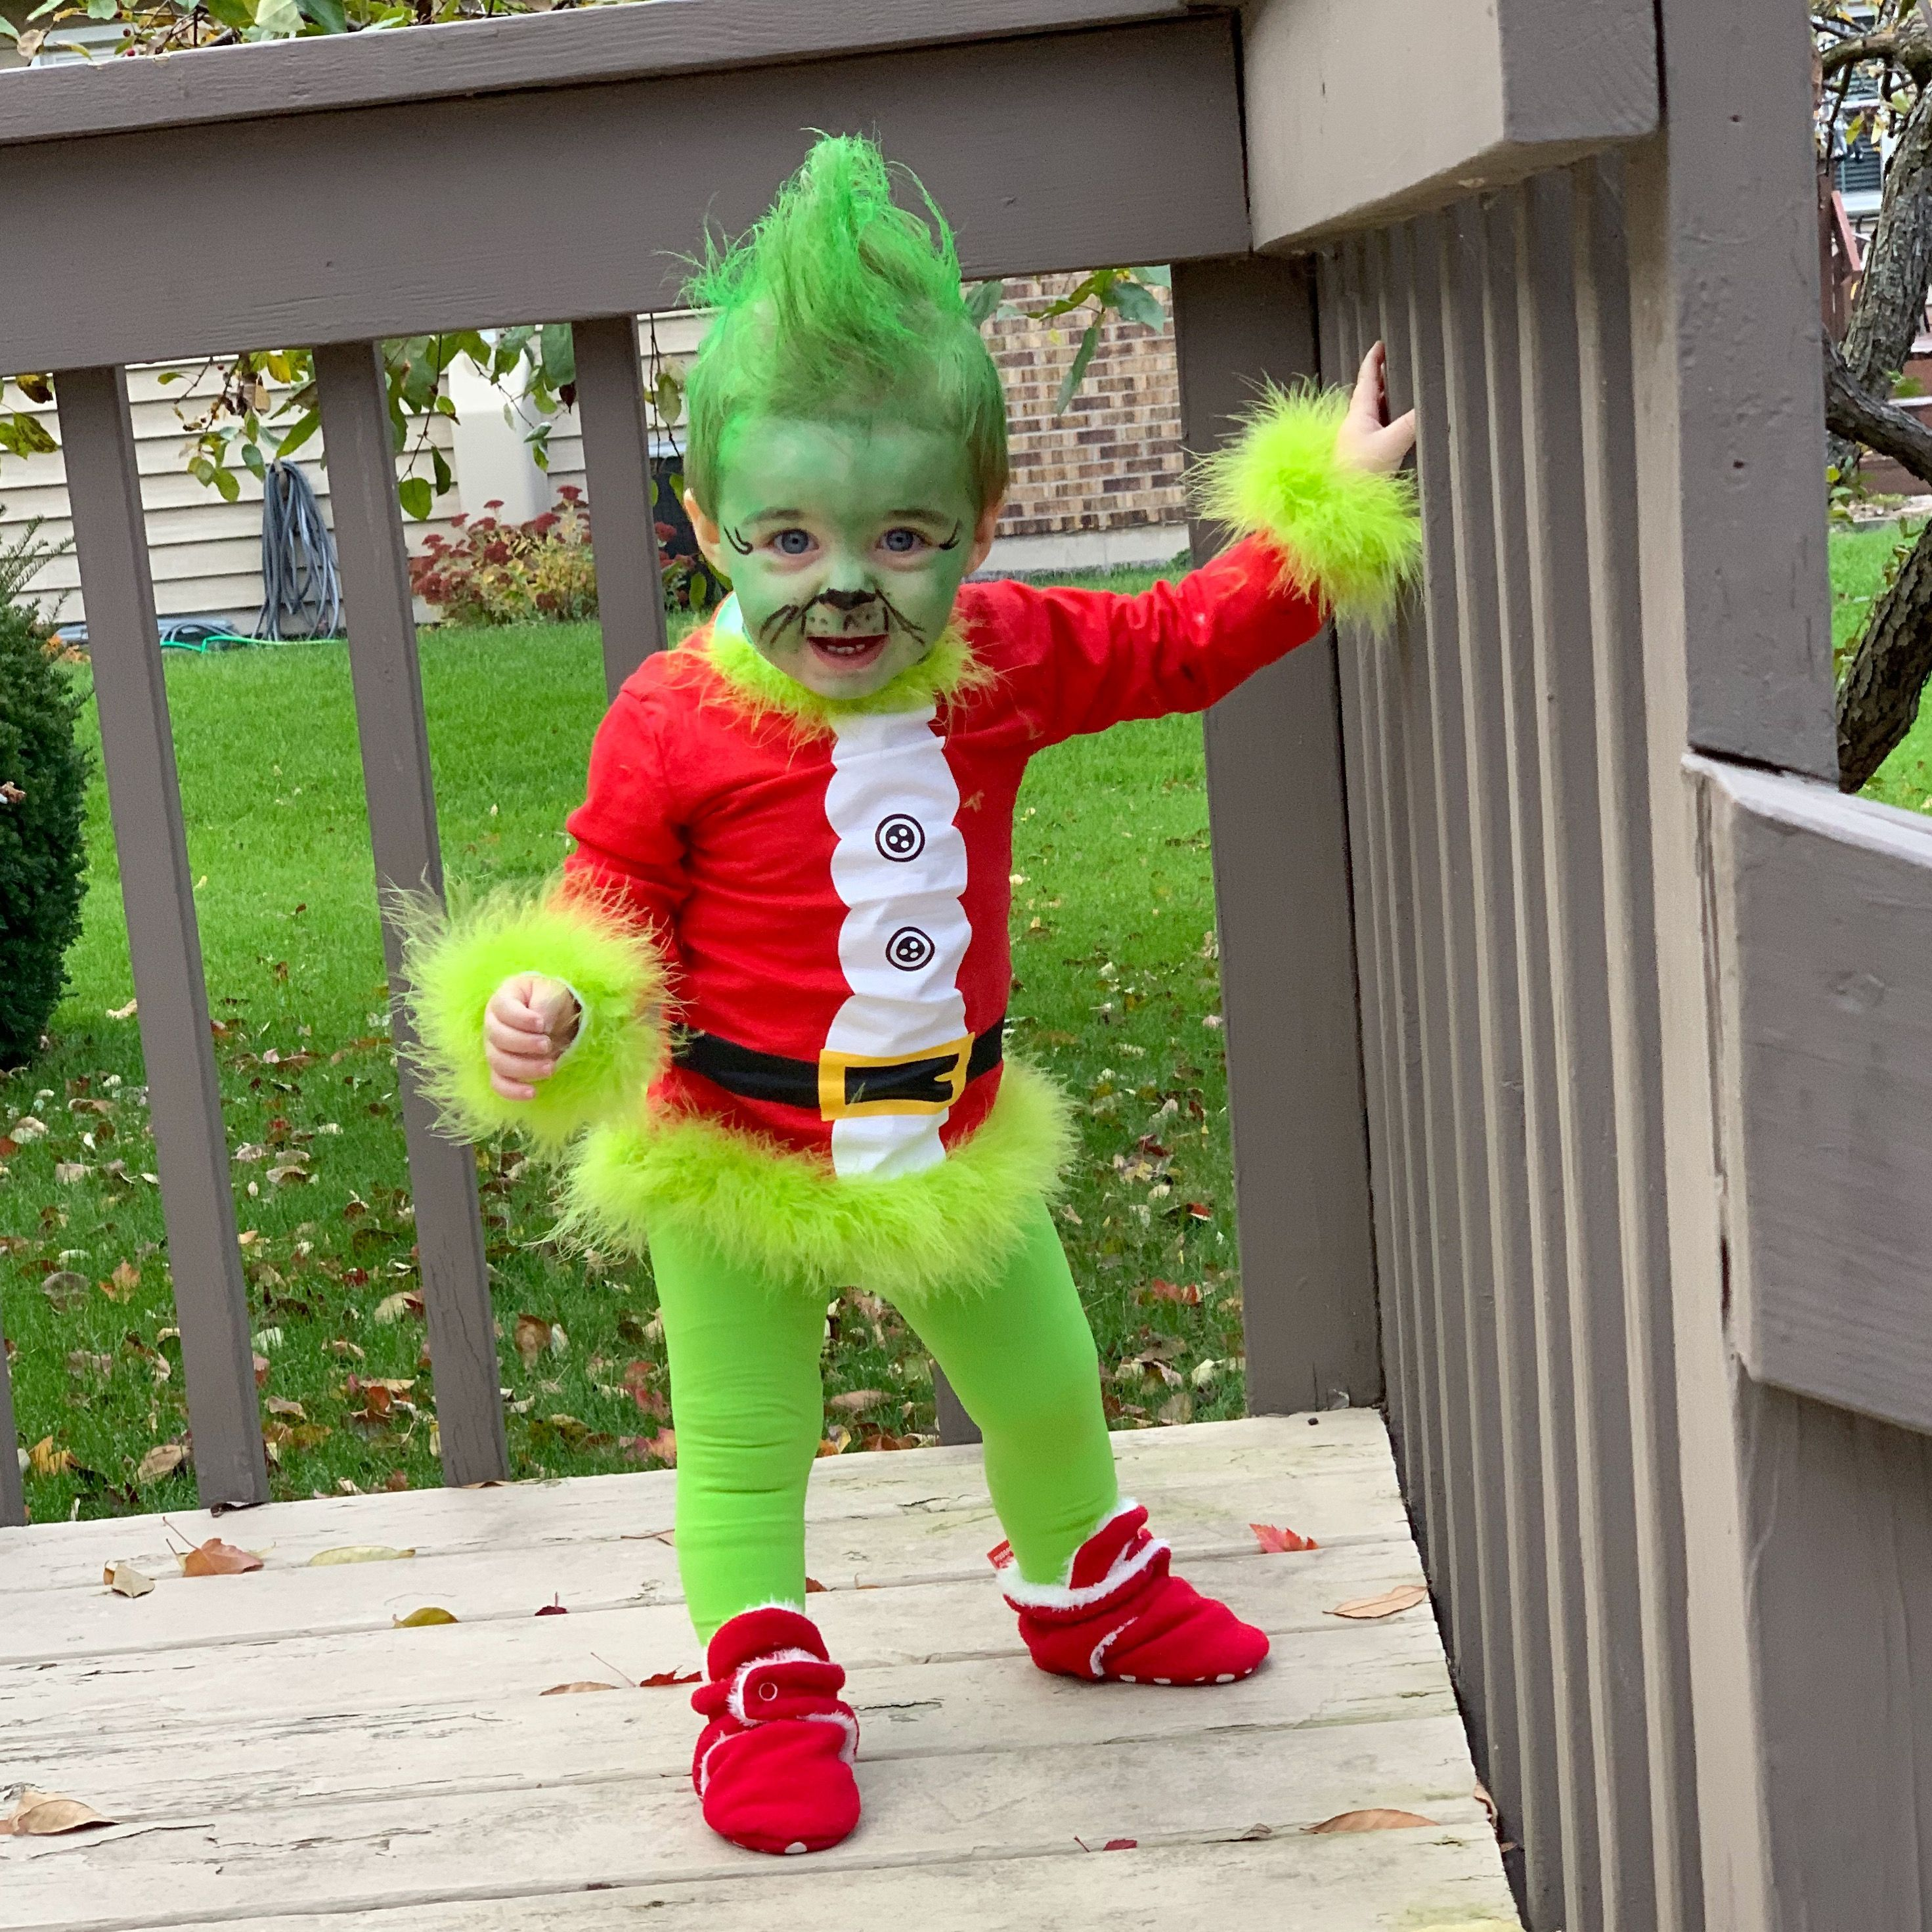 The grinch baby costume 💚 halloween halloweencostume